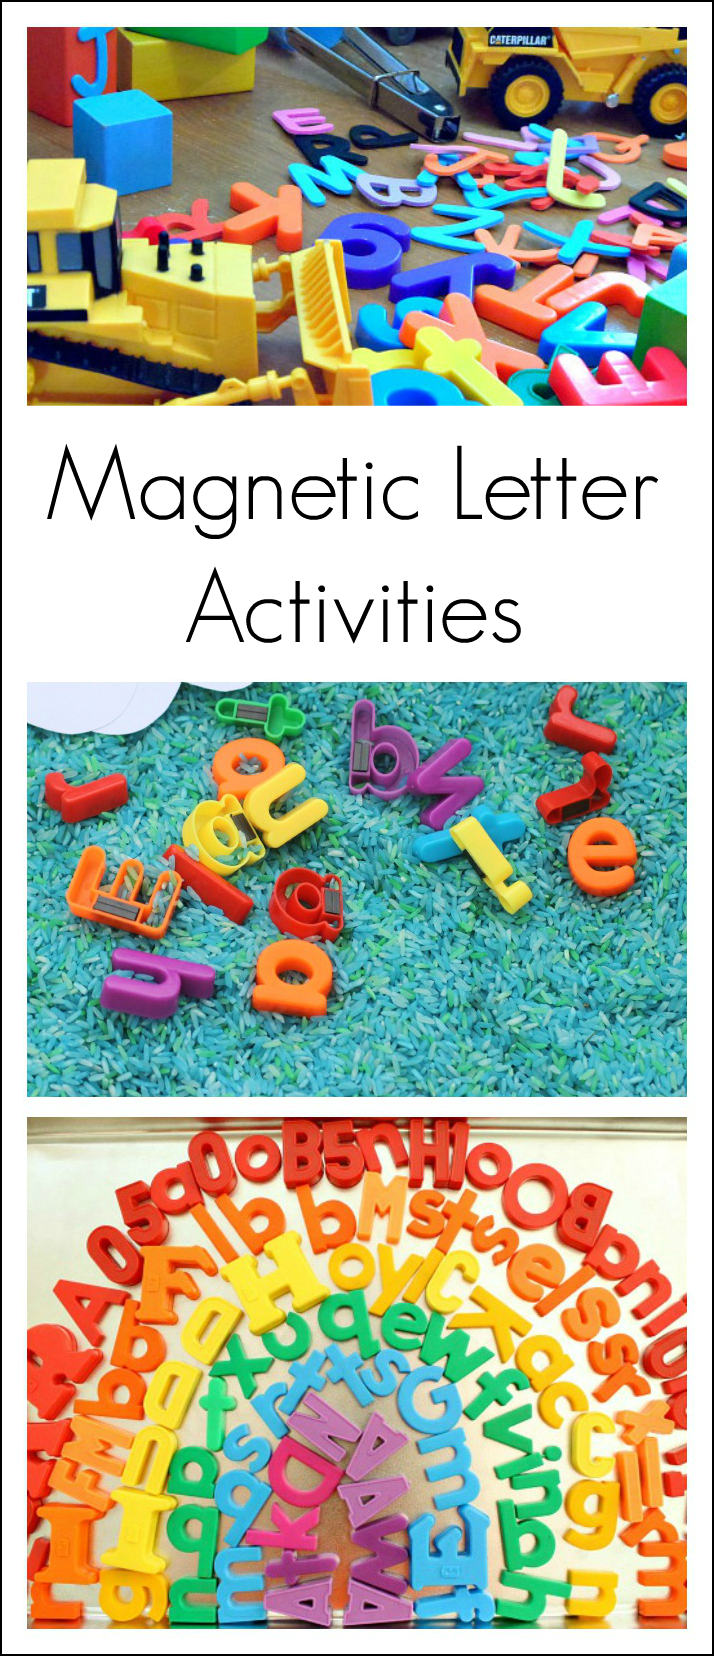 18 fun preschool alphabet activities using magnetic letters!